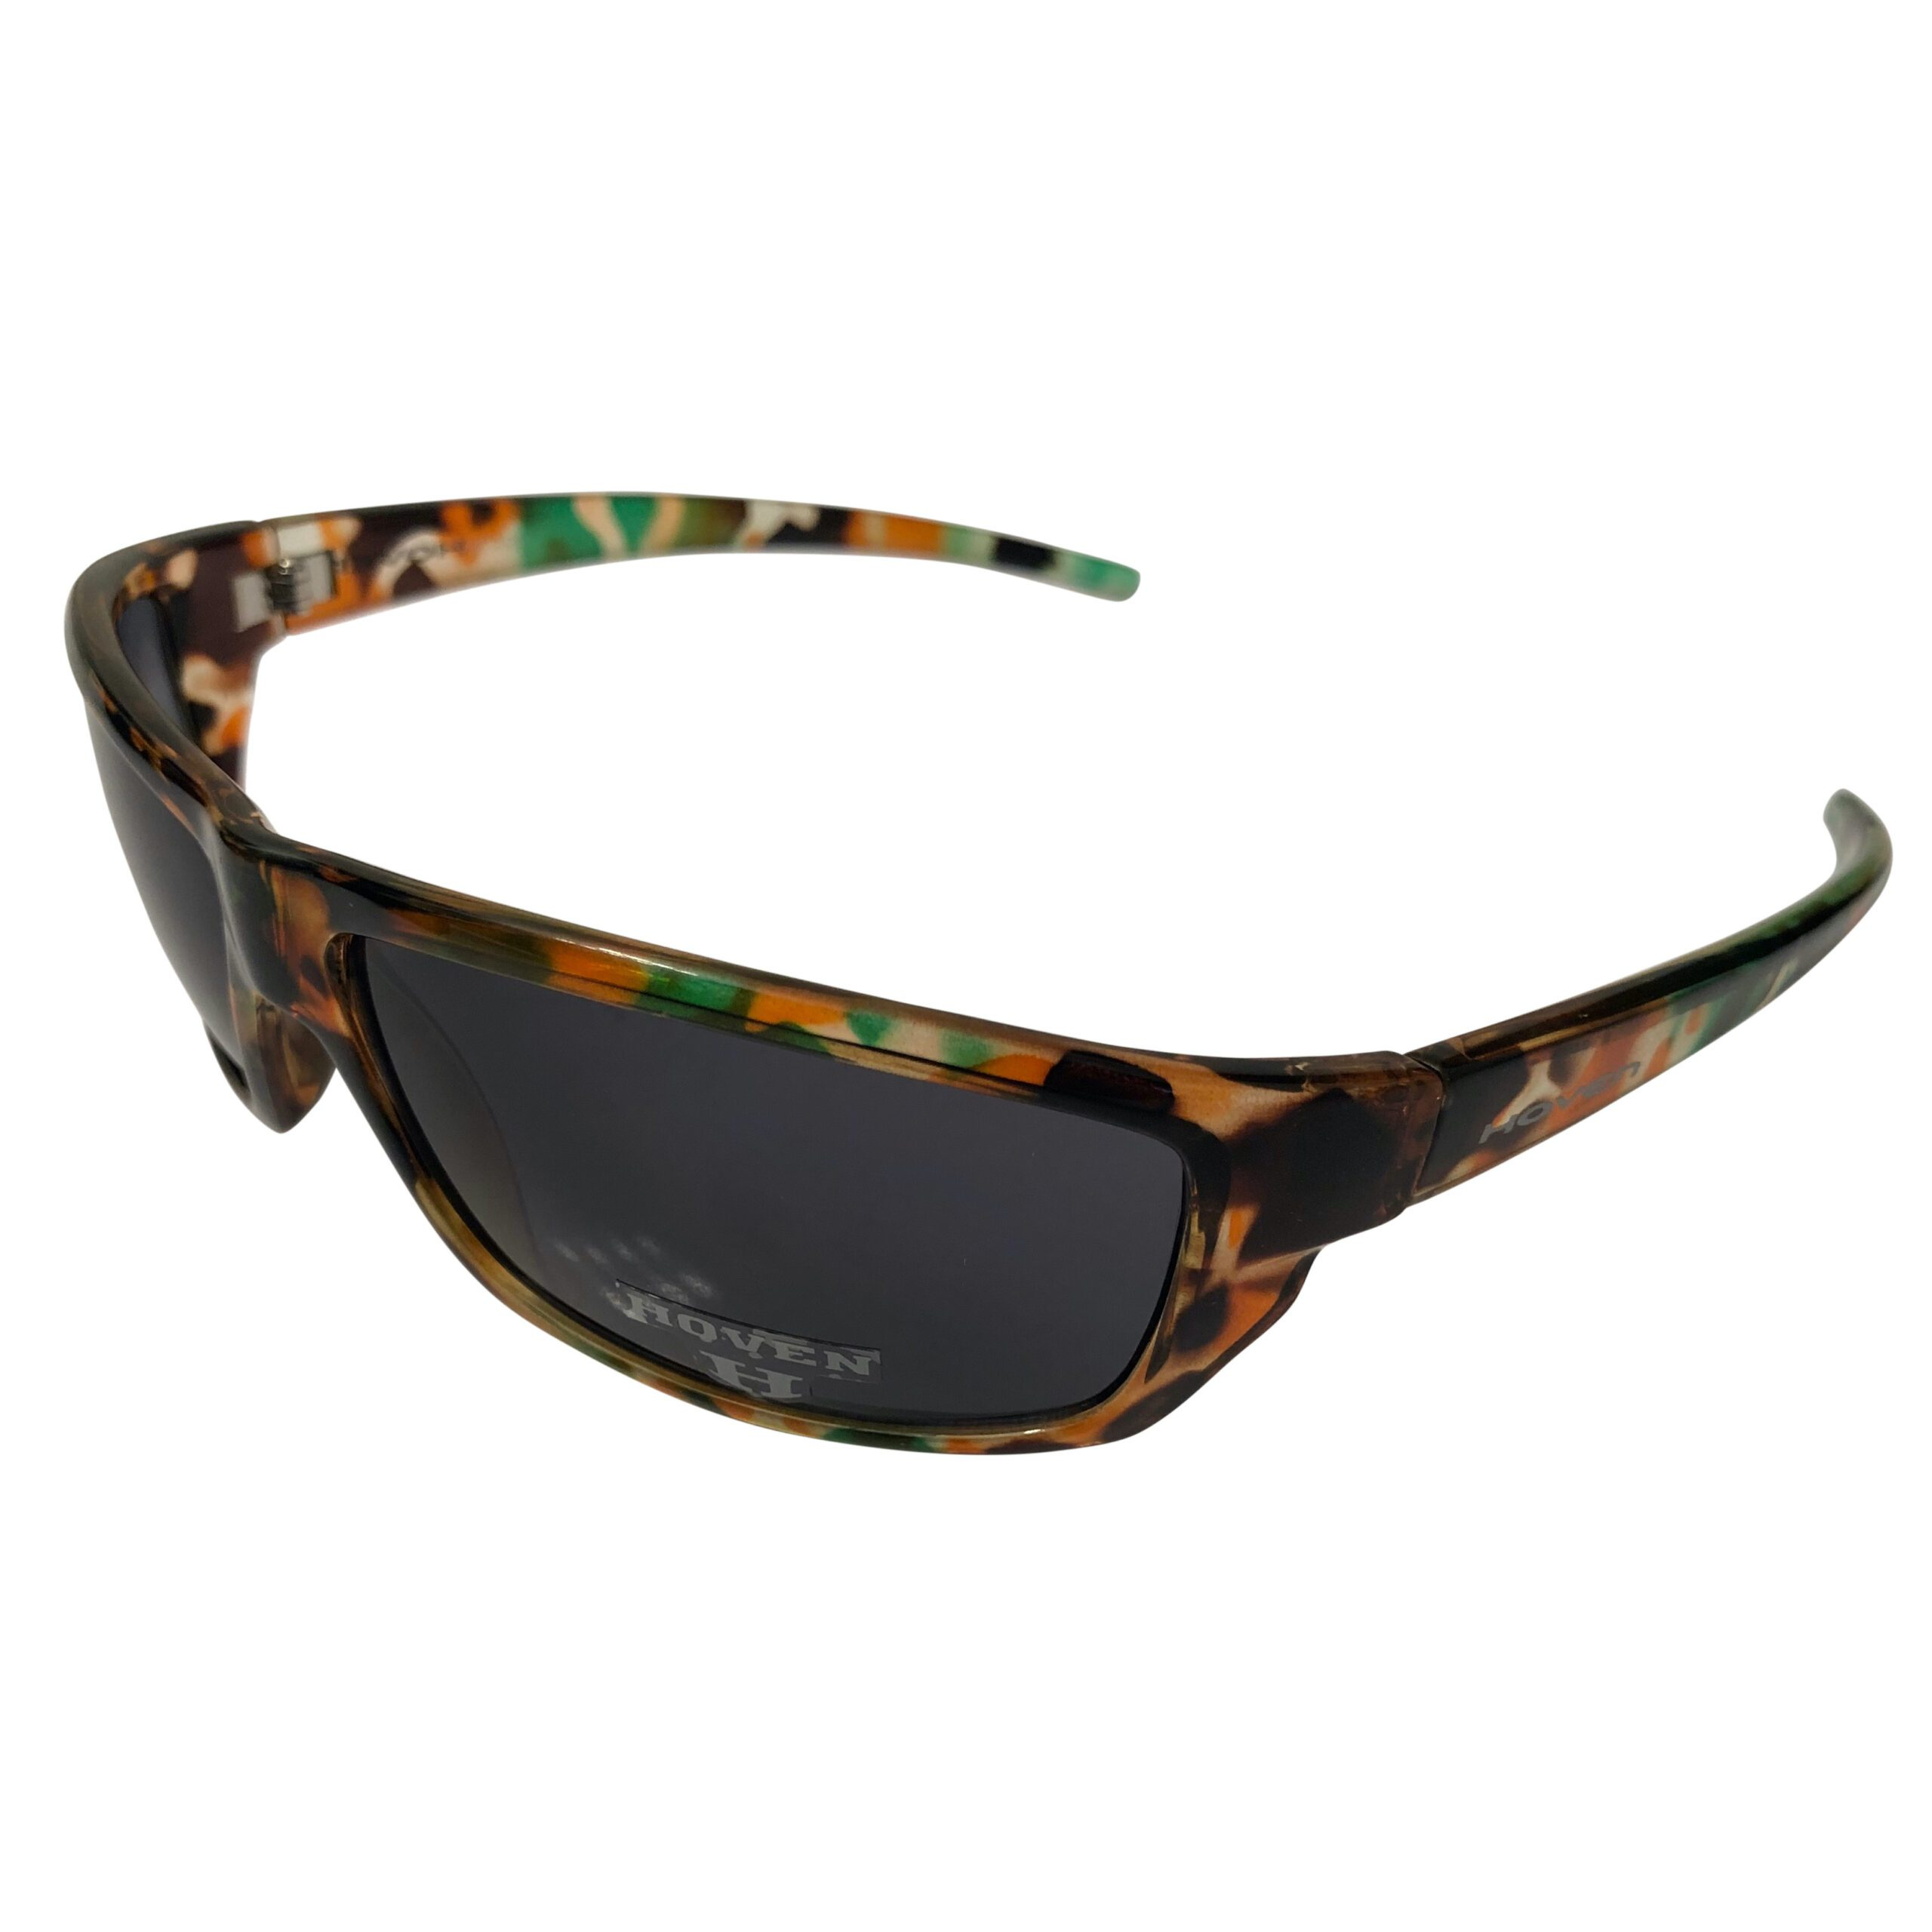 Hoven Vision Standard Sunglasses - Durable Army Camo Frame - Grey Lens